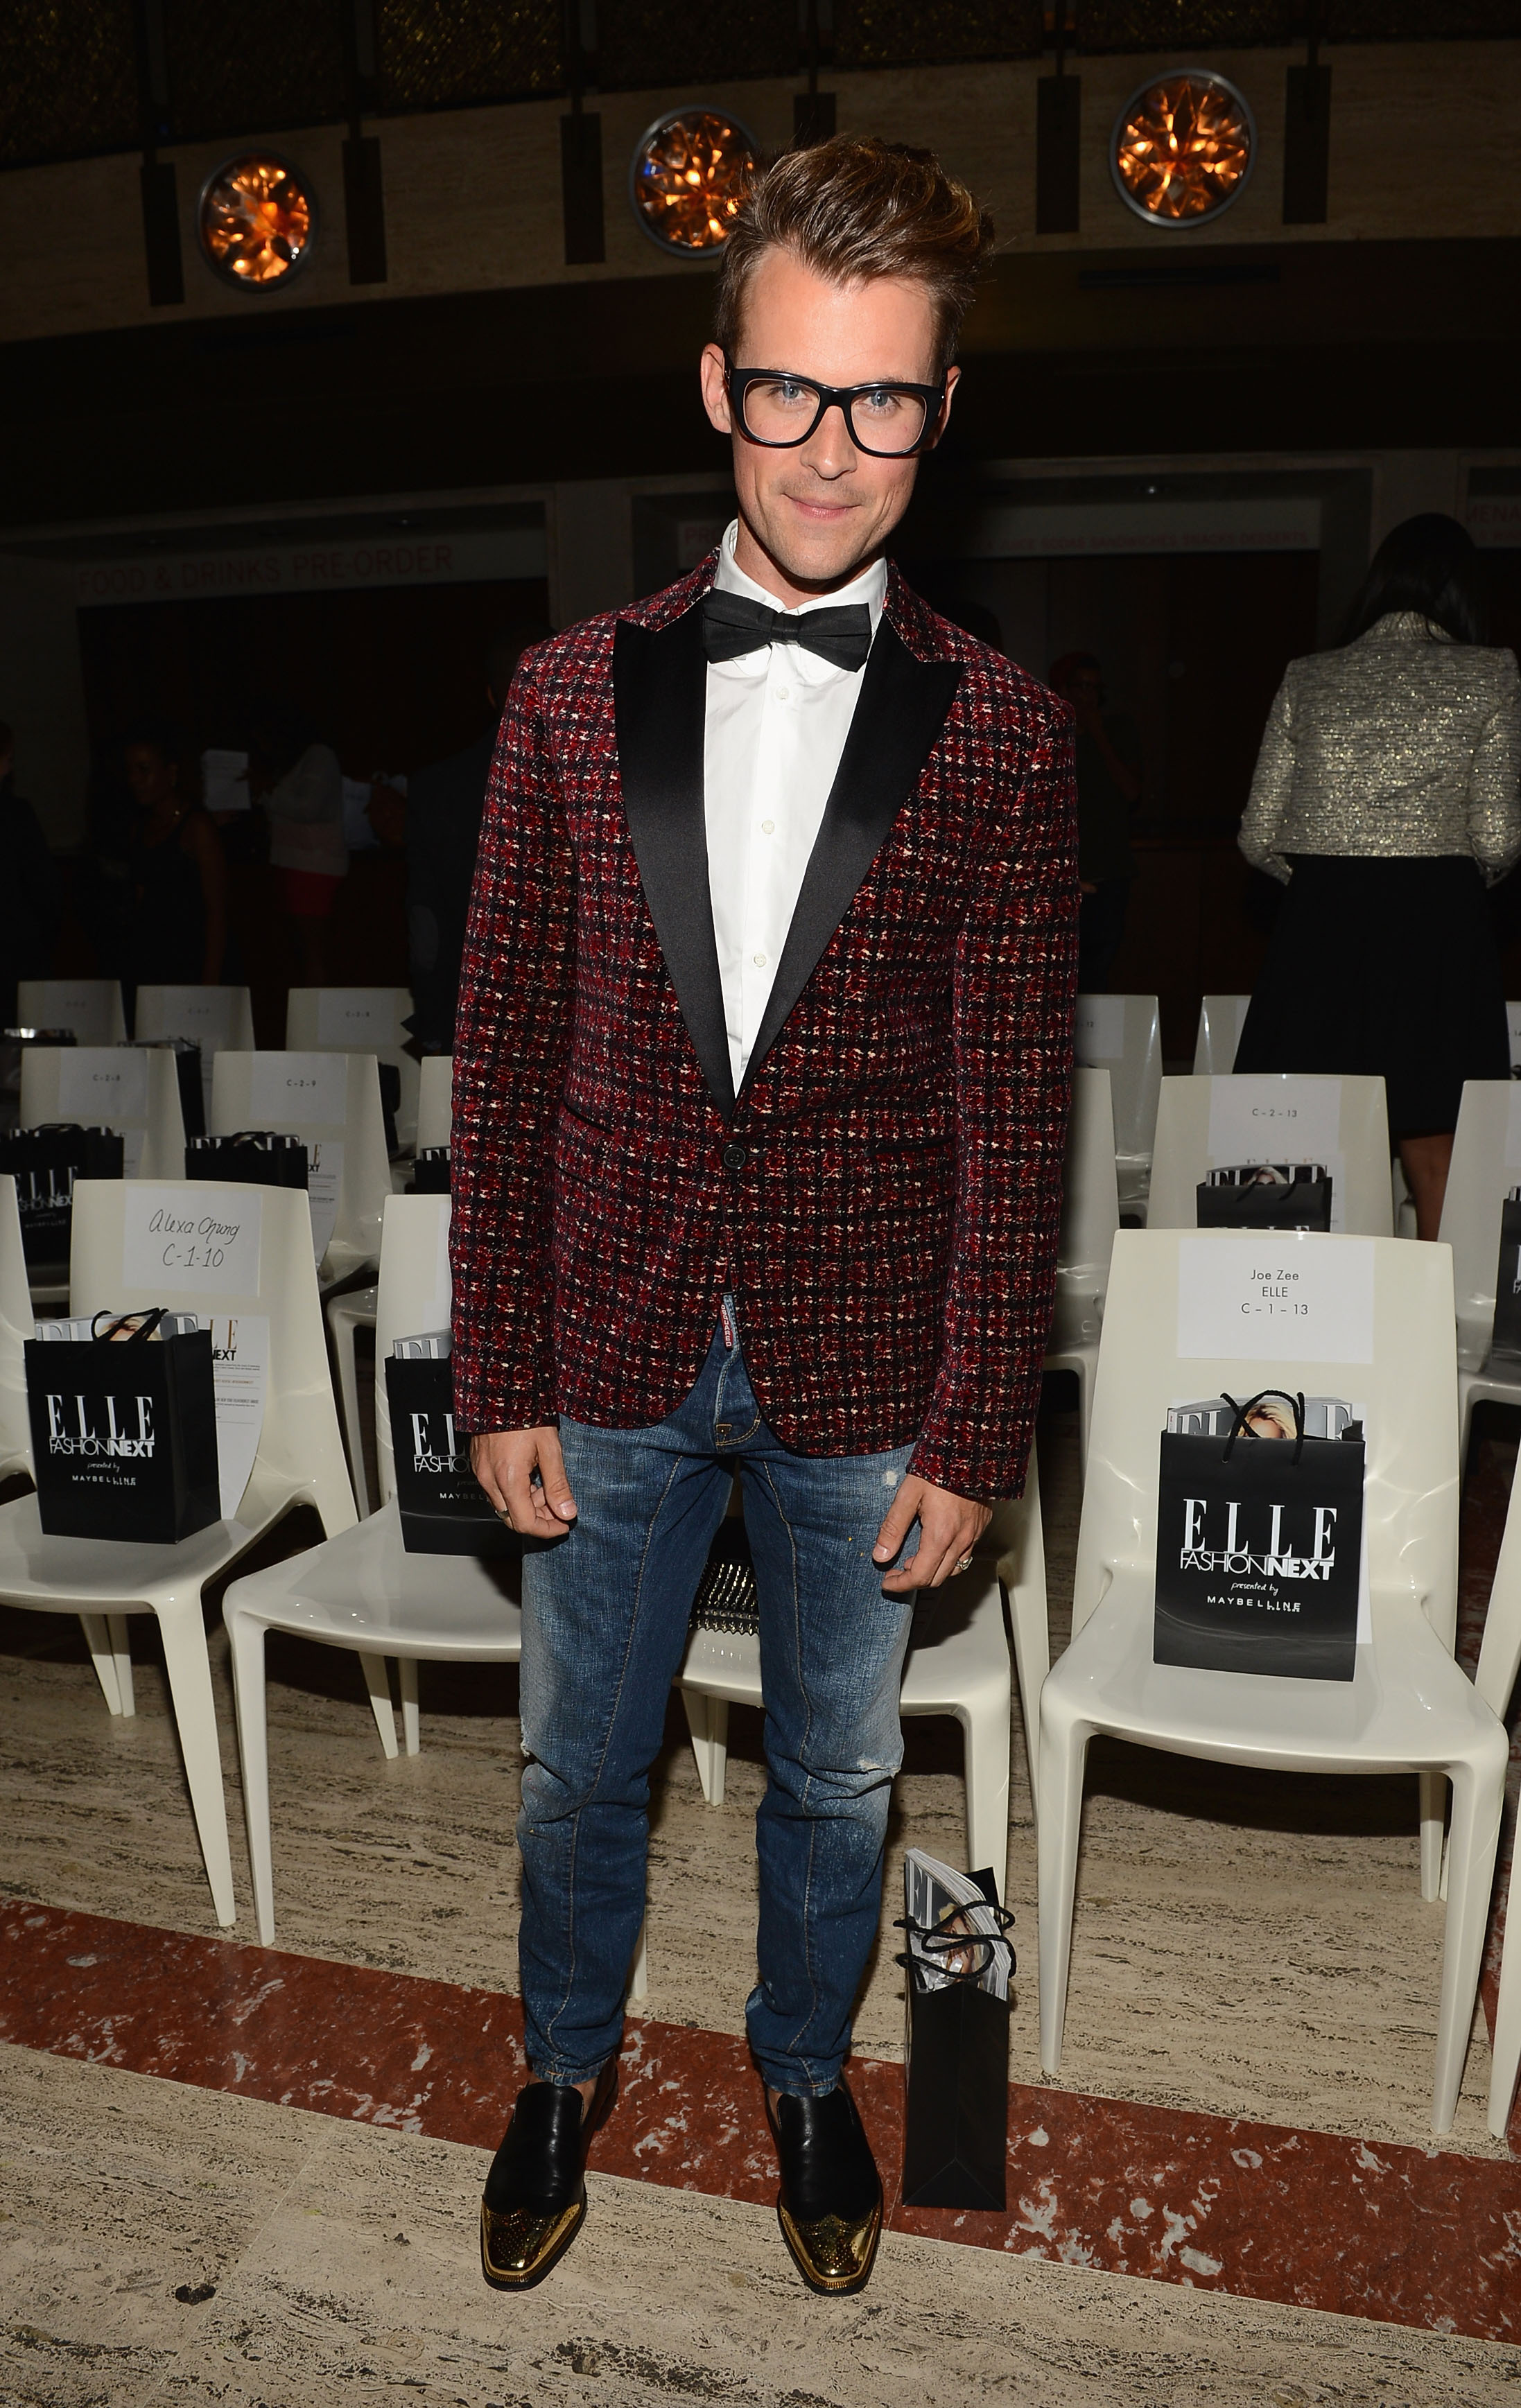 Brad Goreski dressed up his jeans look with a textured tuxedo jacket and bow-tie combo at the Elle Fashion Next show in NYC.